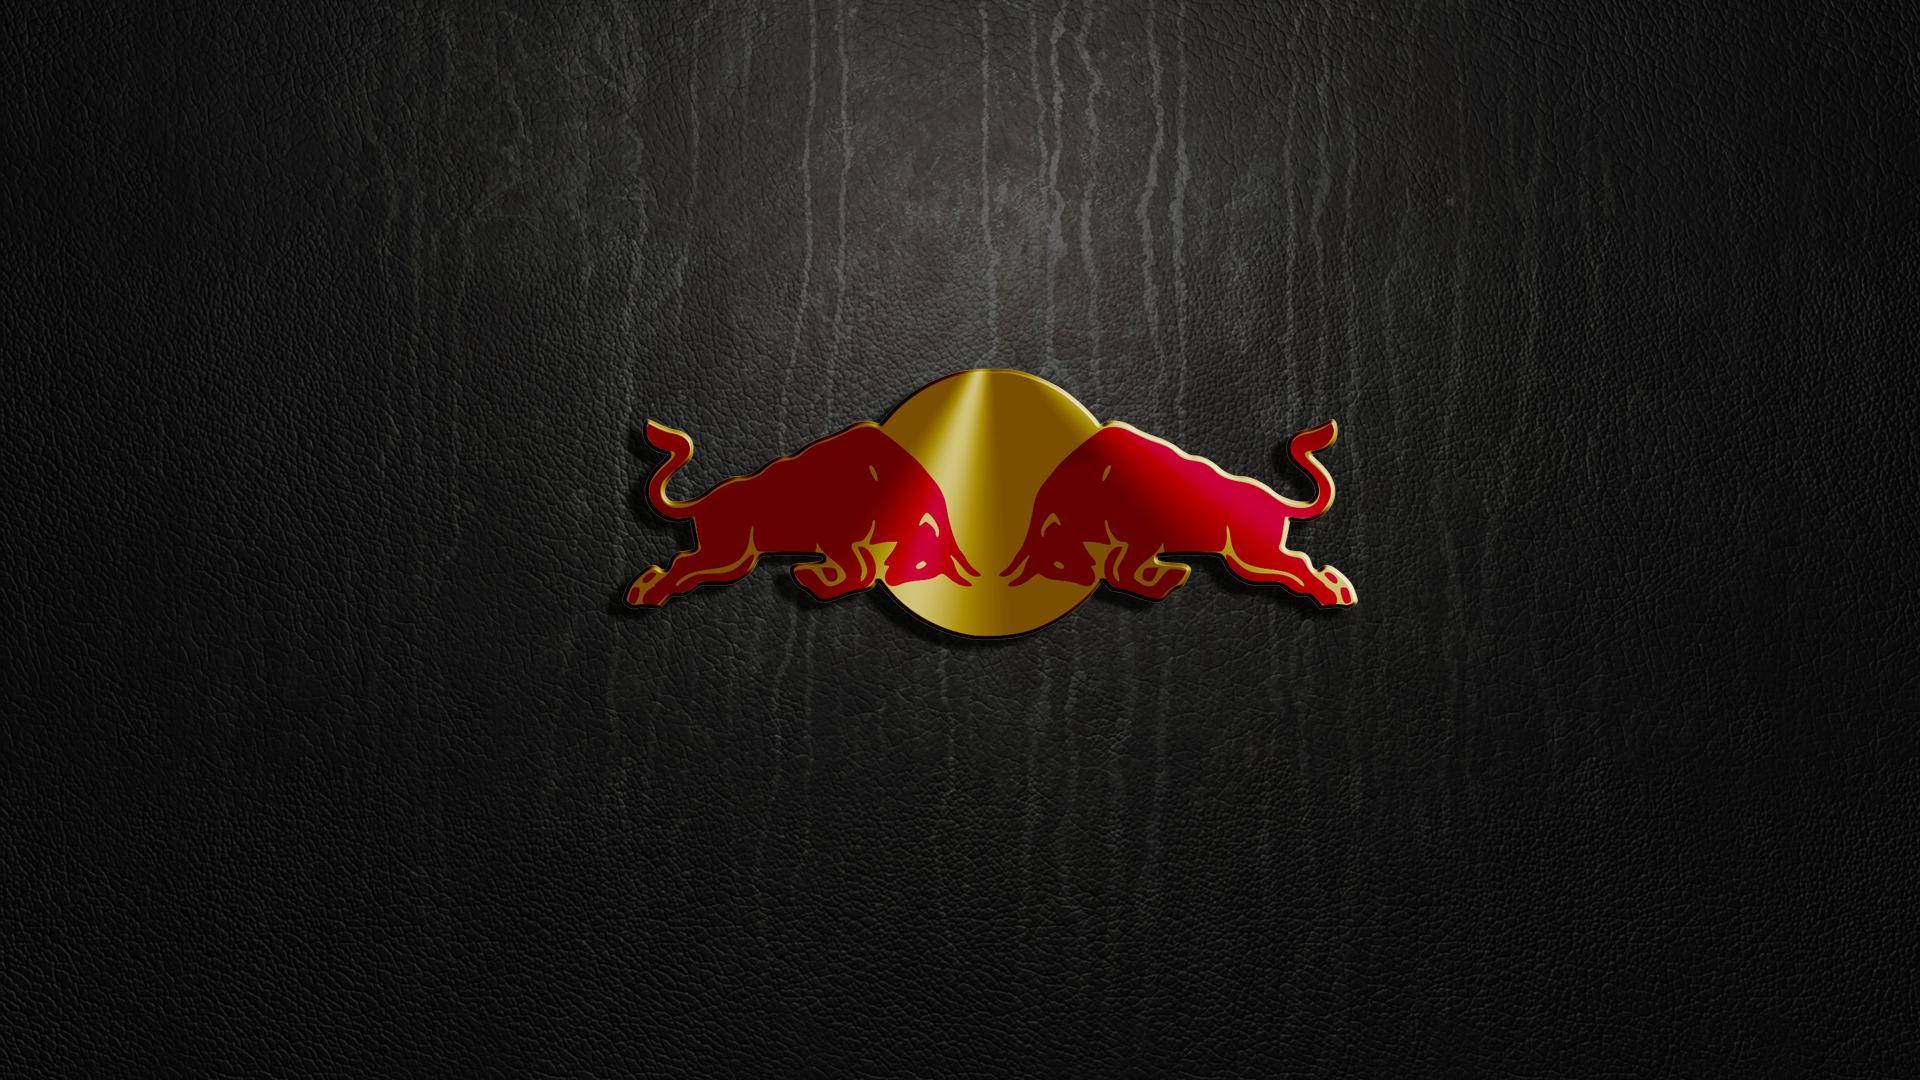 Bull Wallpapers Group With 61 Items: Bulls Logo Wallpaper